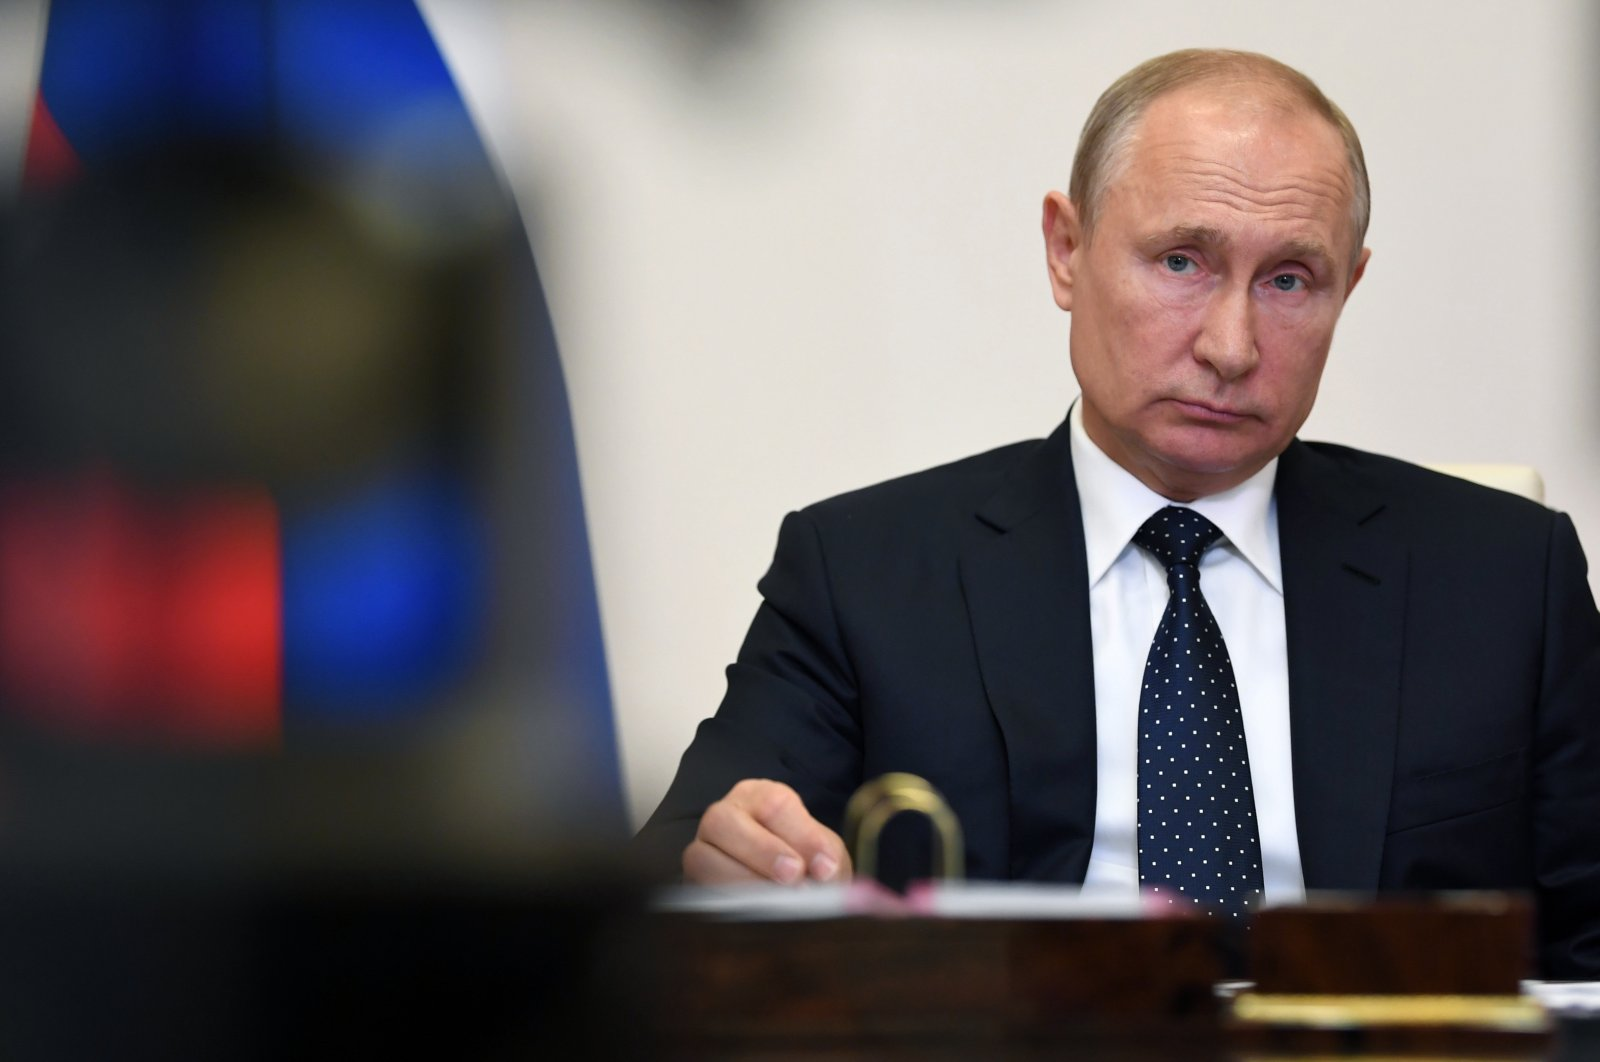 Russian President Vladimir Putin attends a meeting of the Supreme Eurasian Economic Council via teleconference at the Novo-Ogaryovo residence outside Moscow, Russia, May 19, 2020. (Kremlin Pool Photo via AP)